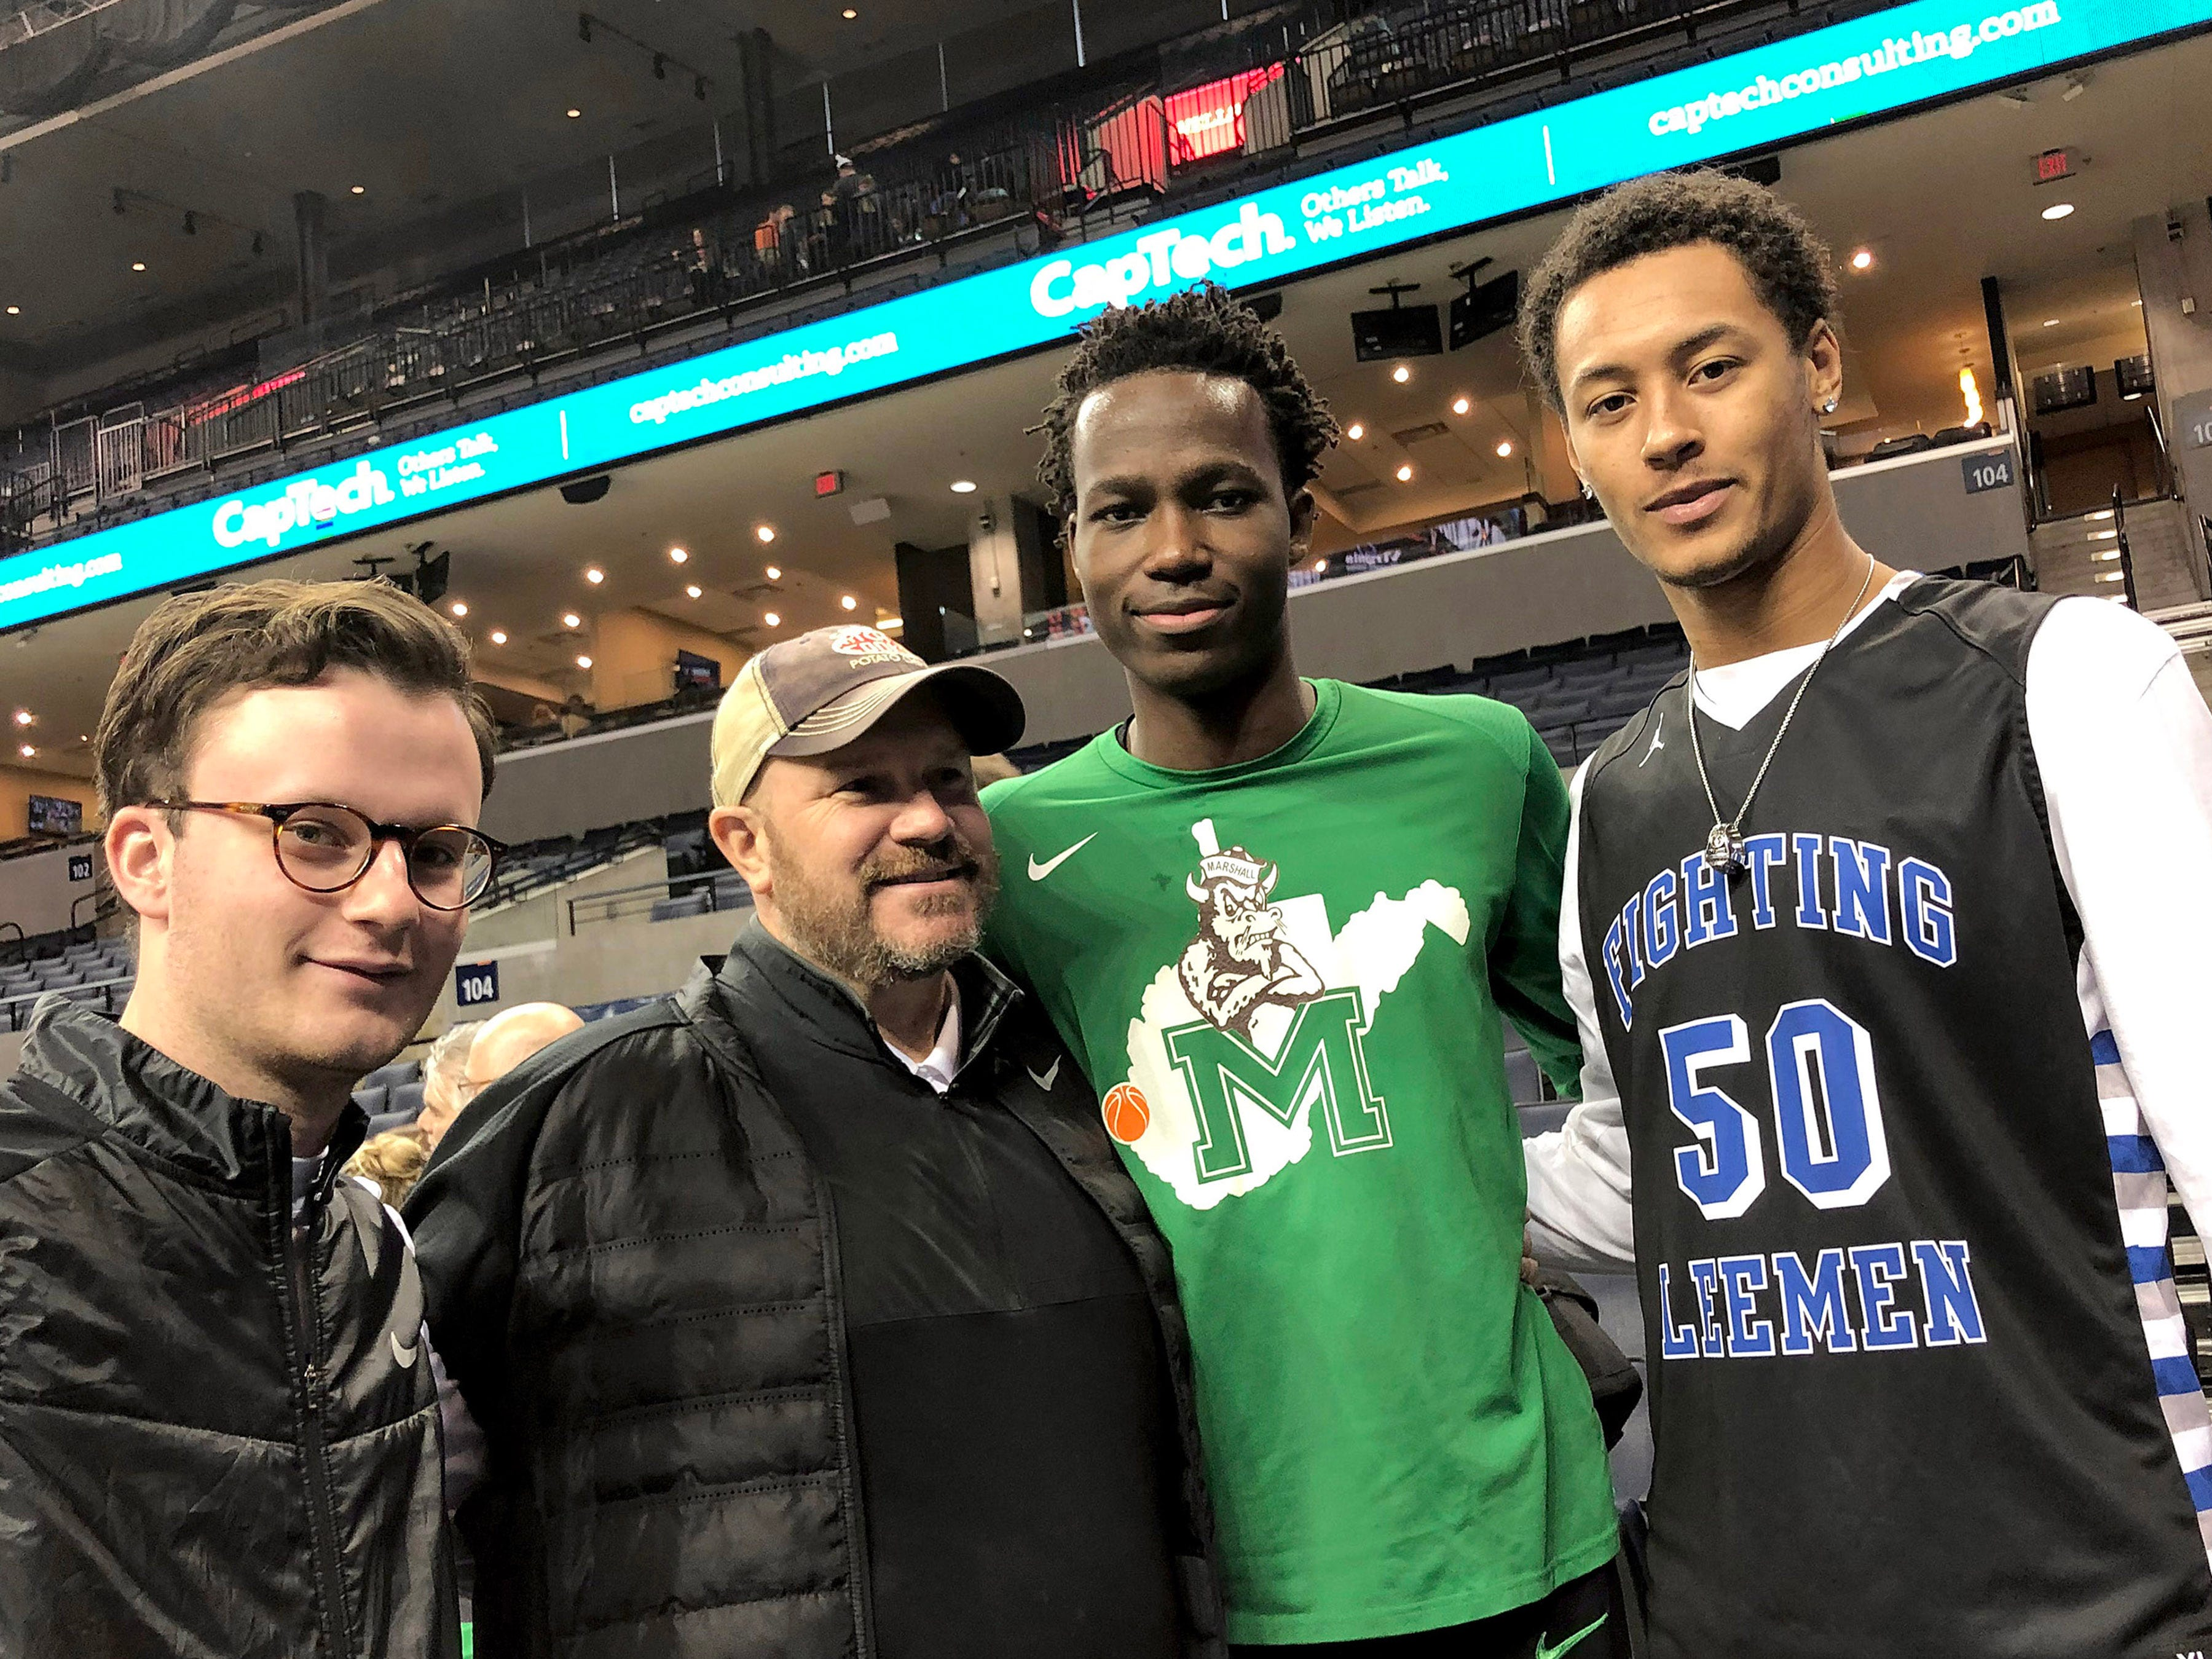 Marshall's Darius George (center), former R.E. Lee star, is photographed with his high school coach, Jarrett Hatcher as well as R.E. Lee former assistant coach Sam LaClair (far left) and former teammate Jarvis Vaughan (far right) after Marshall's game against the University of Virginia, played at the John Paul Jones Arena on Dec. 31, 2016.